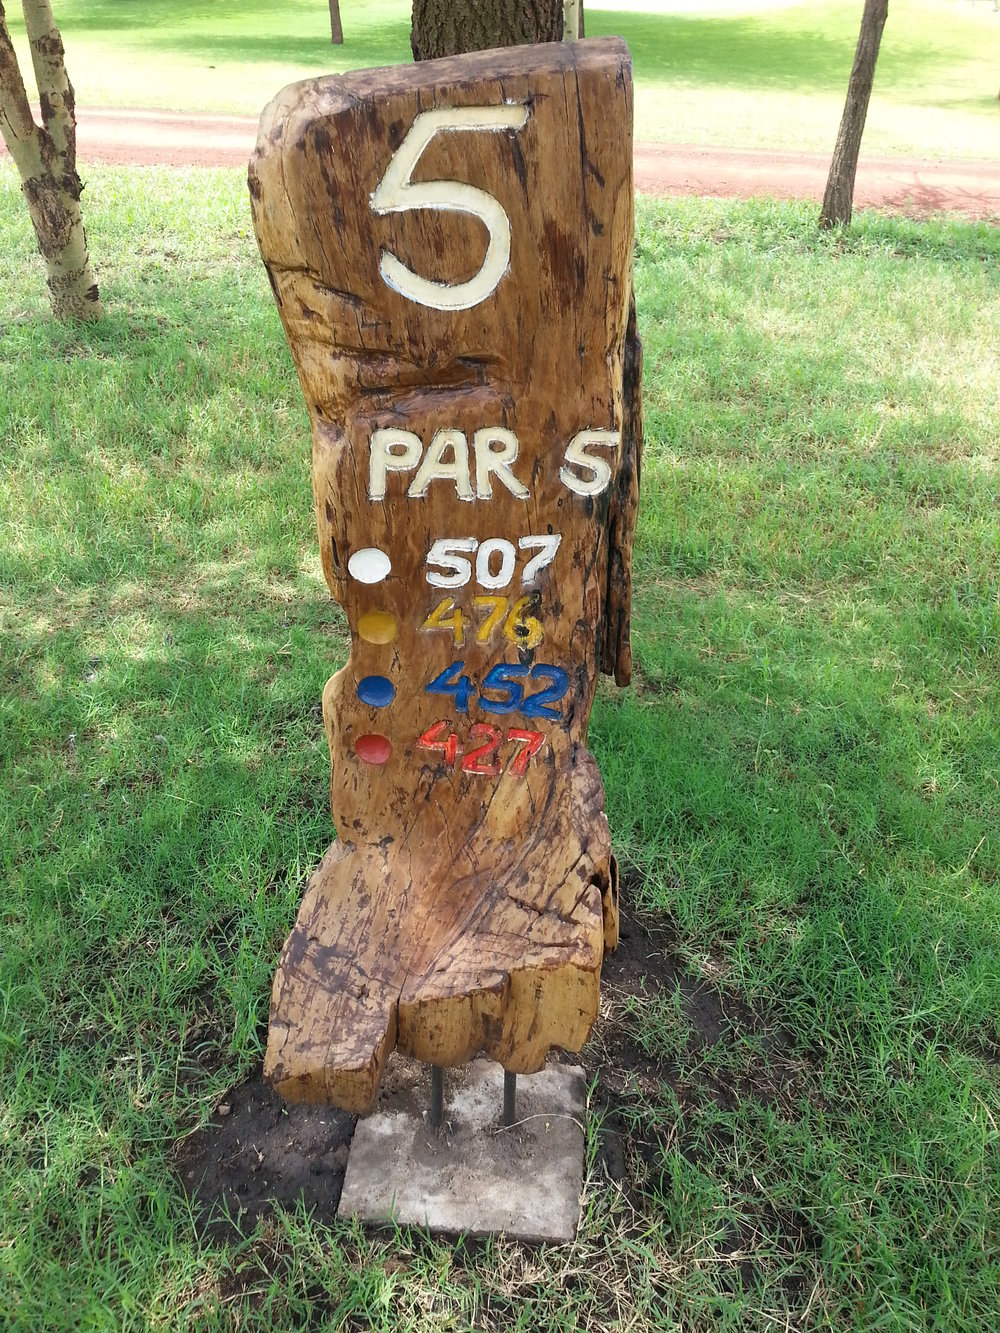 Where is this Par 5.jpg